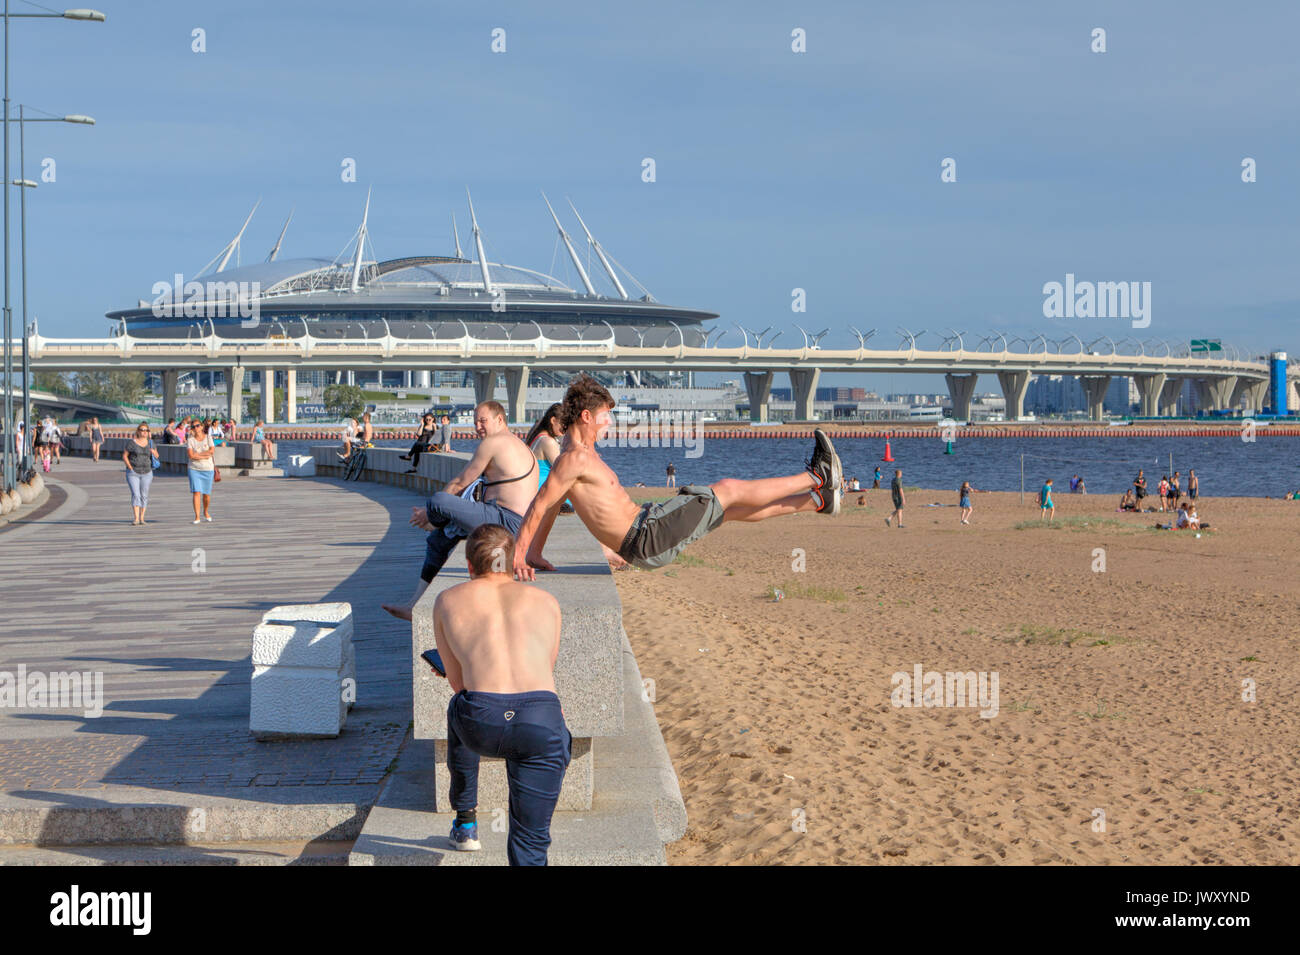 St. Petersburg, Russia - August 1, 2017: Park of the 300th anniversary of St. Petersburg, young man trains parkour in beach. - Stock Image